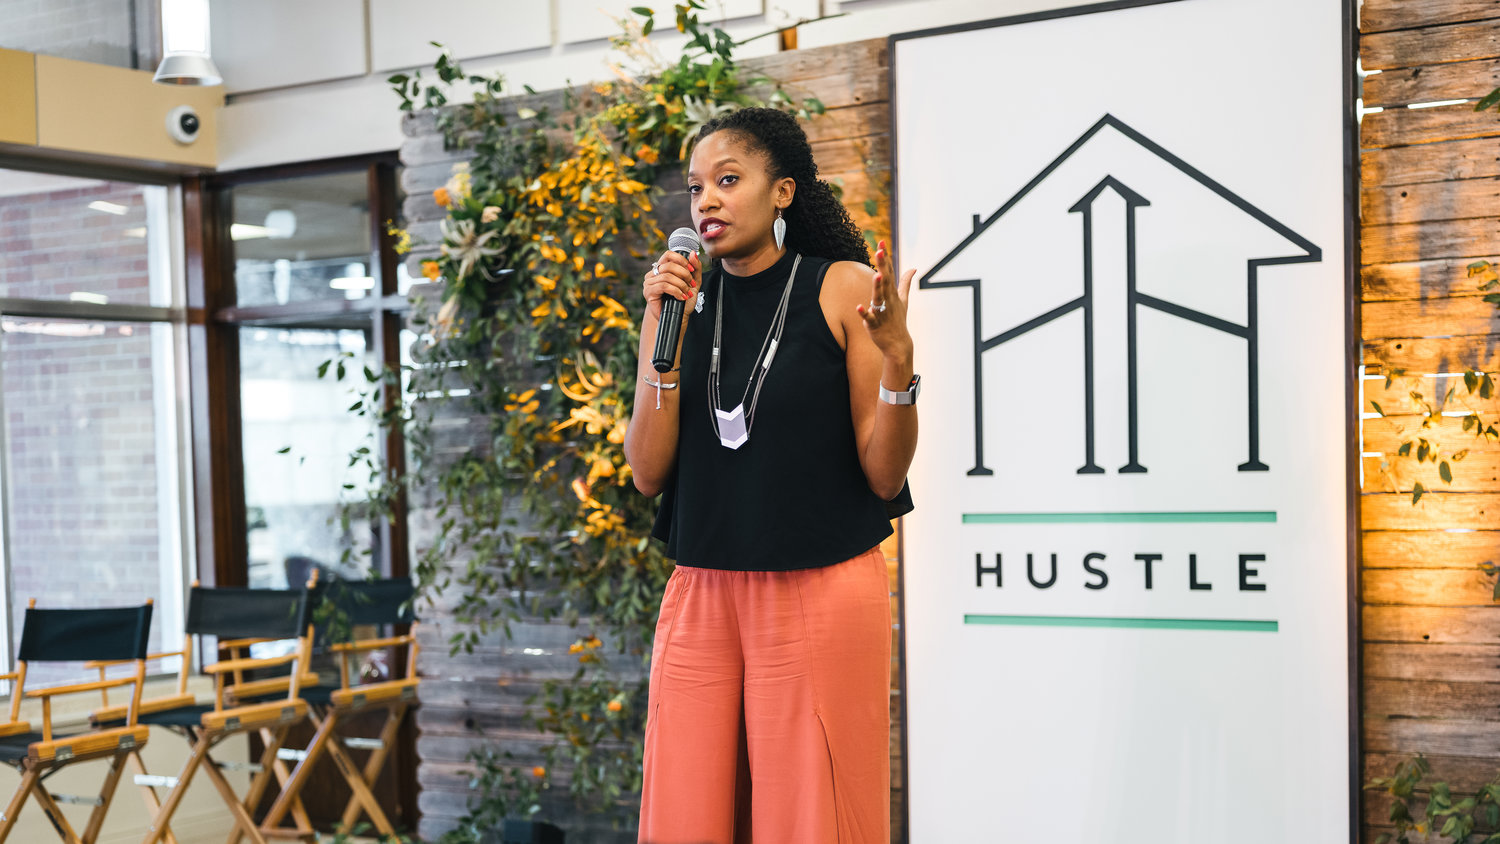 hustle_house_aw speaking (1)@0,75x.jpg